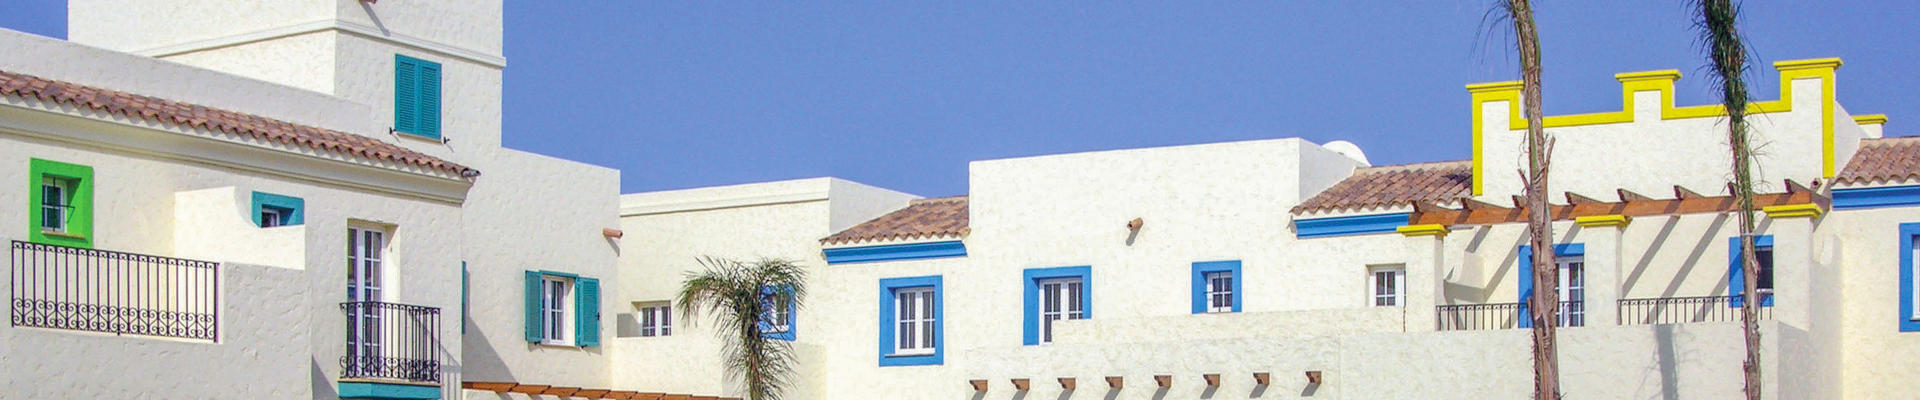 LV768: 2 Bedroom Townhouse for Sale